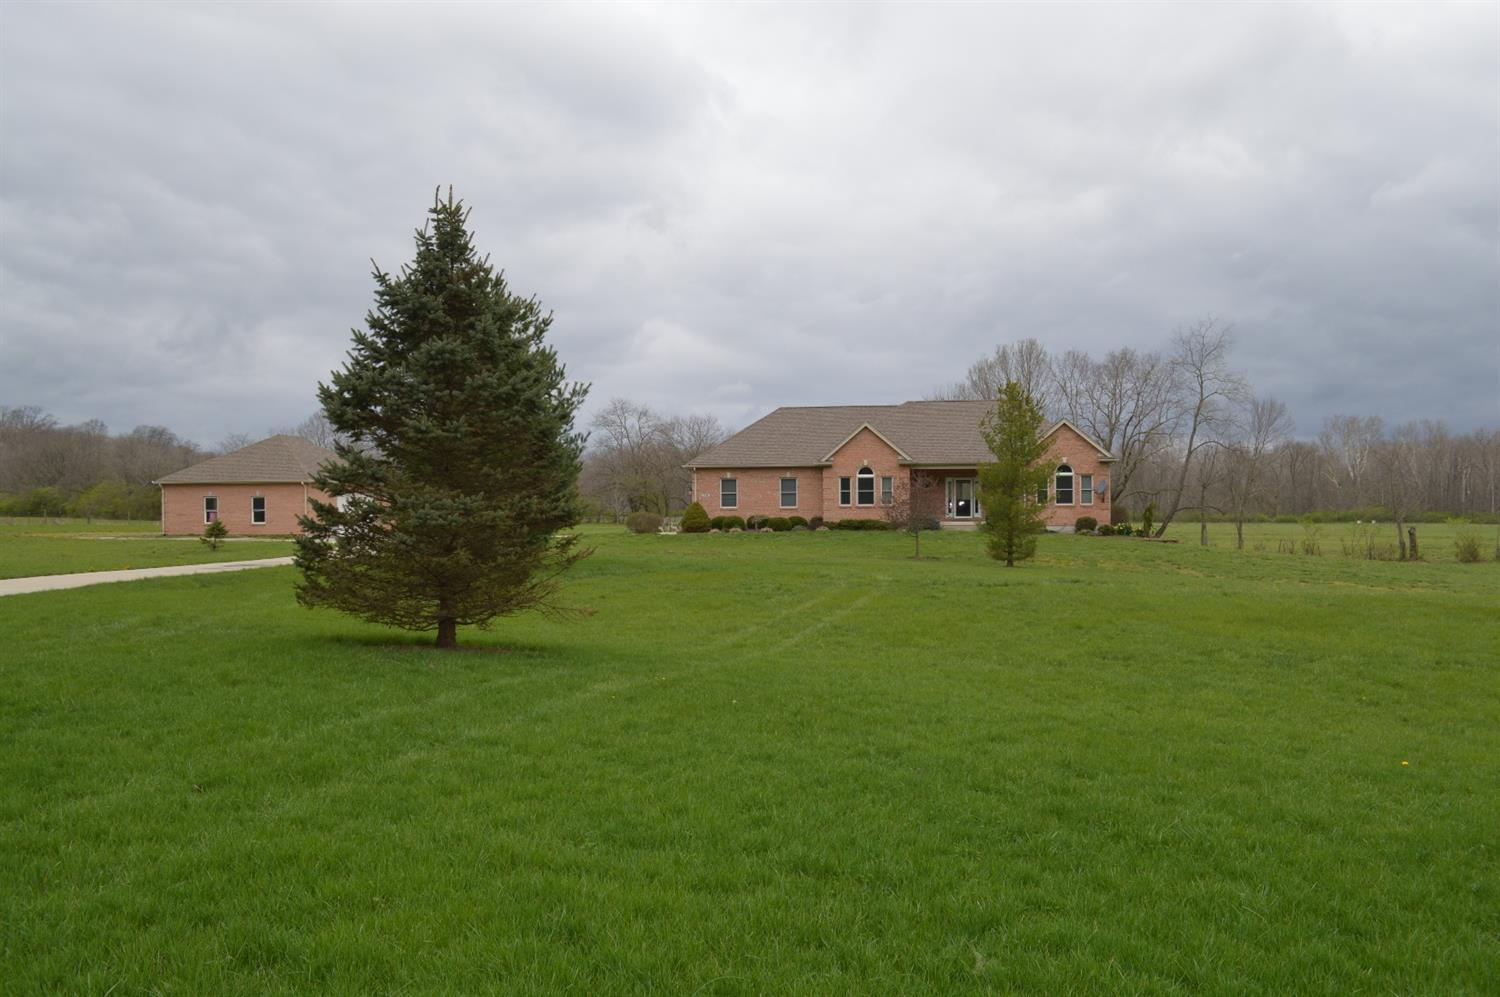 770 Hogue Rd St. Clair Twp., OH